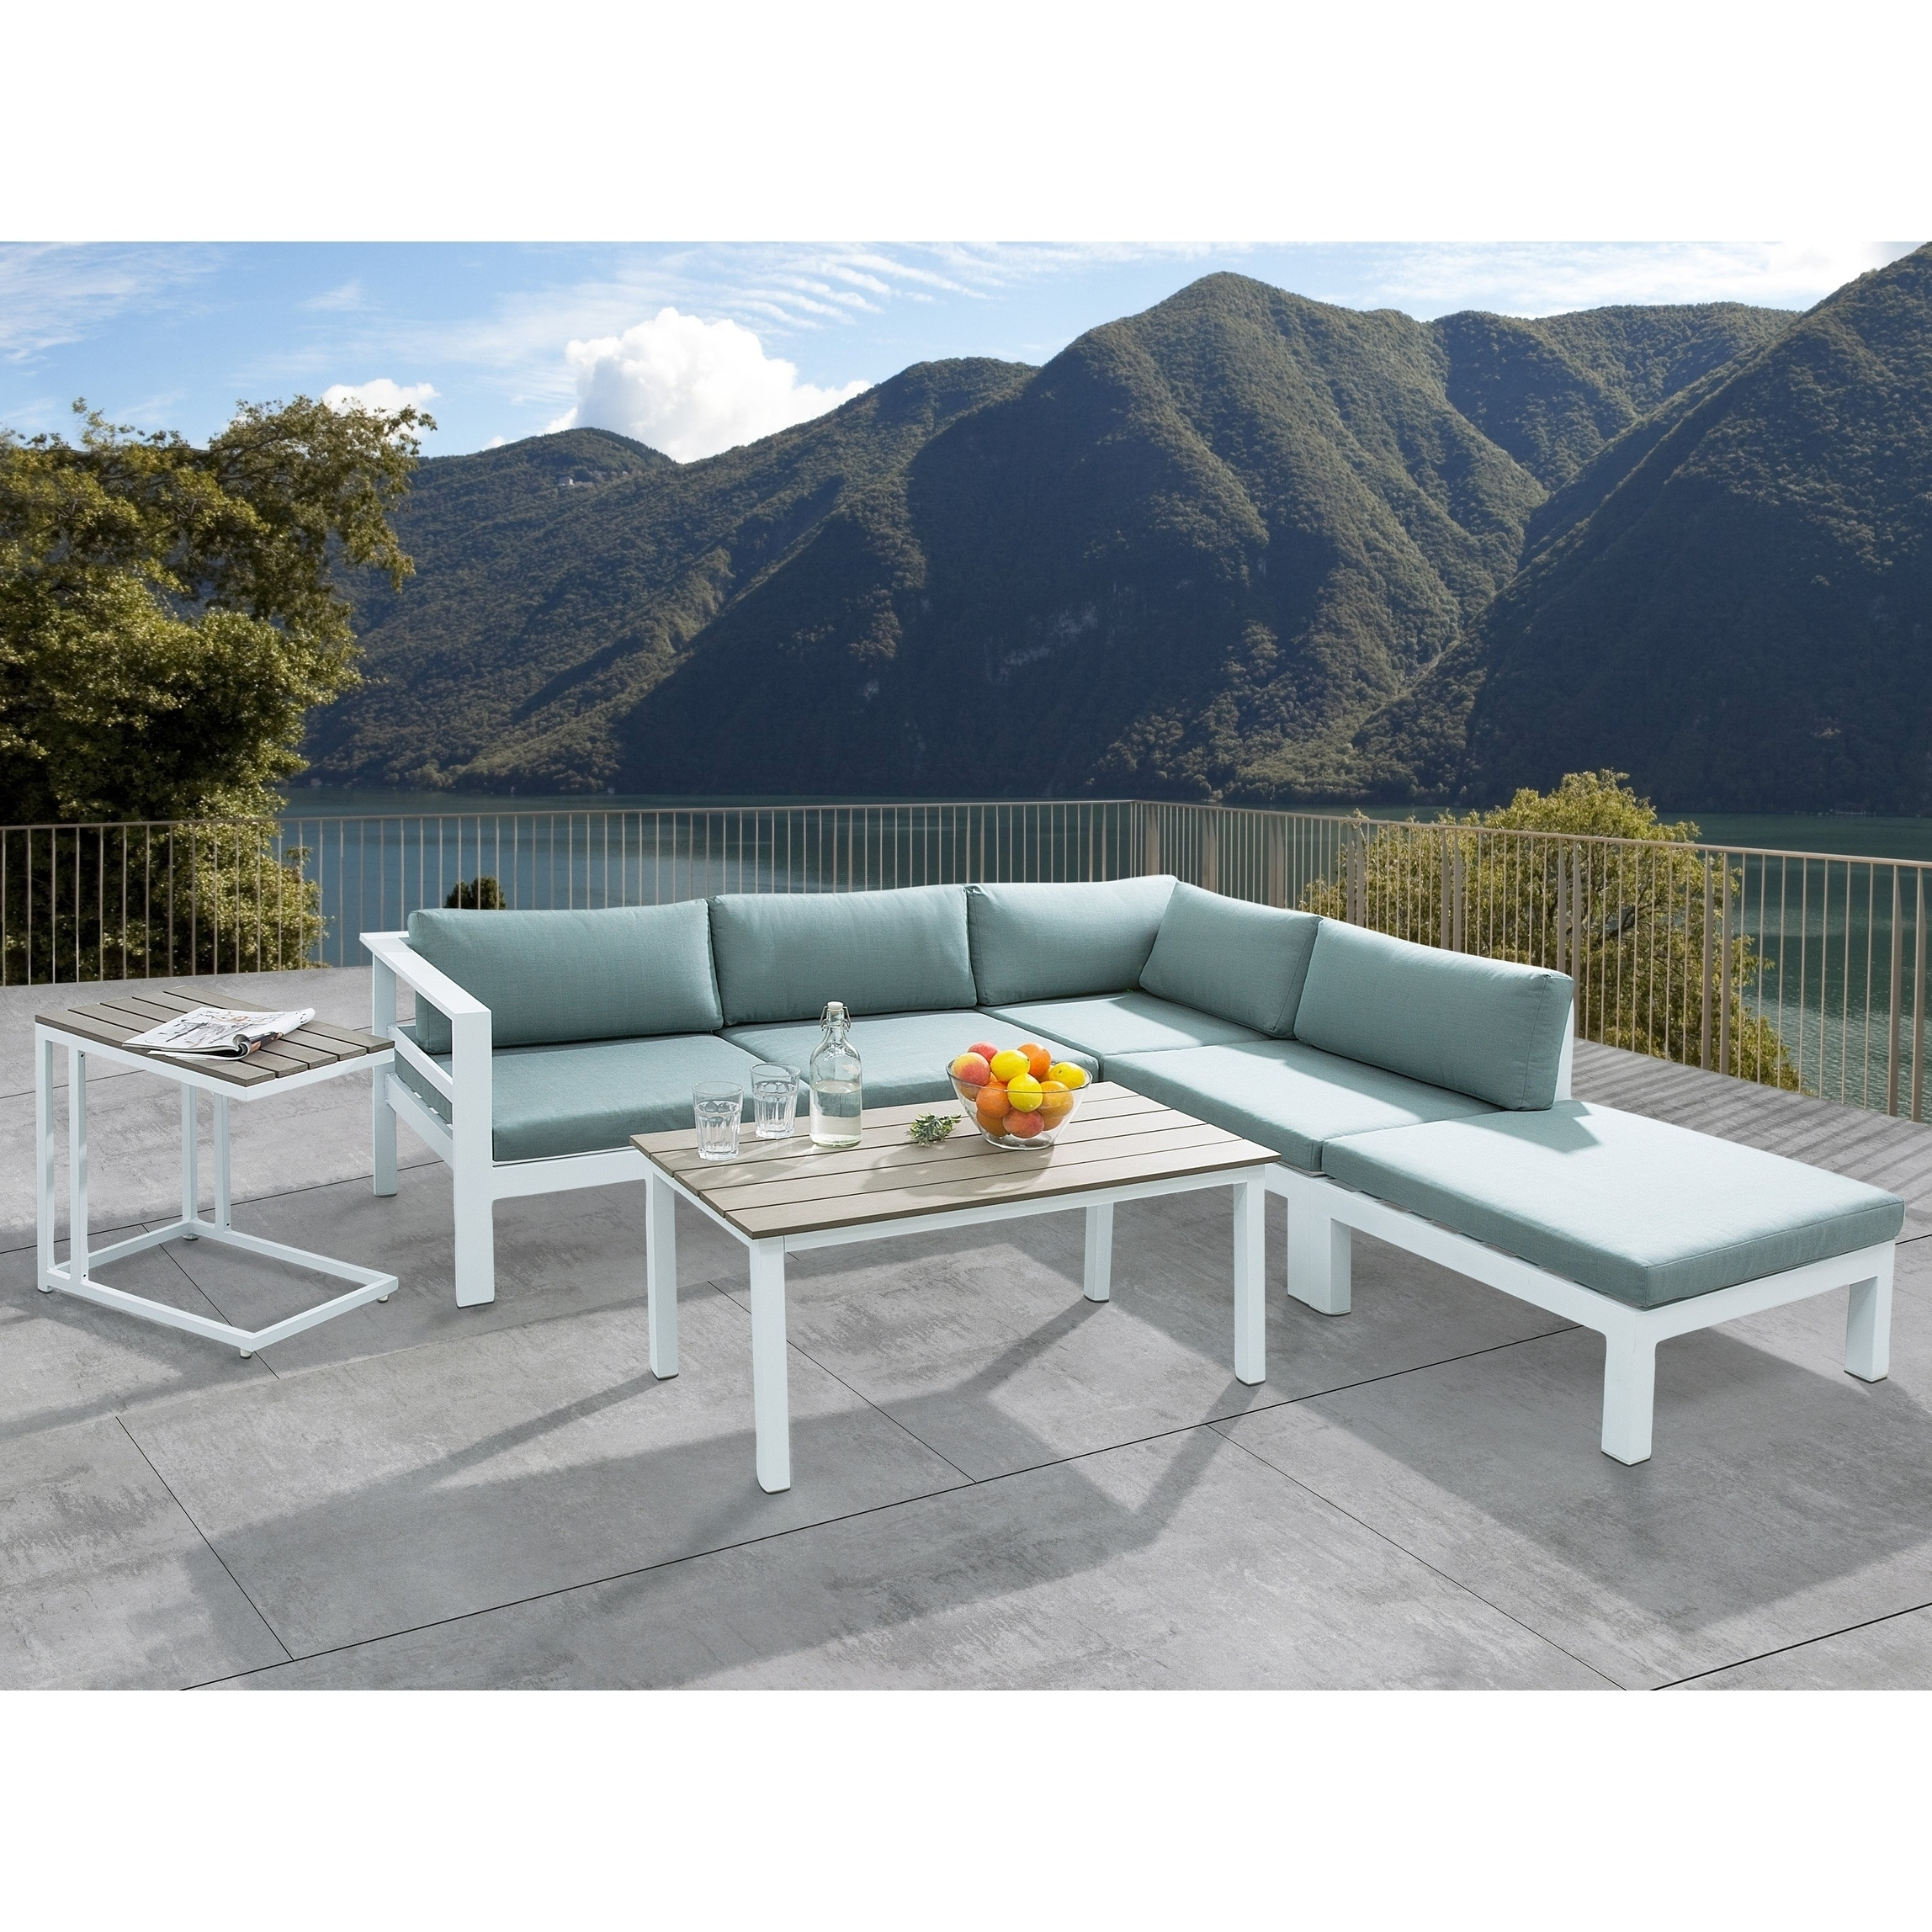 Superior Aluminum Patio Lounge Set MESSINA   Free Shipping Today   Overstock    24746631